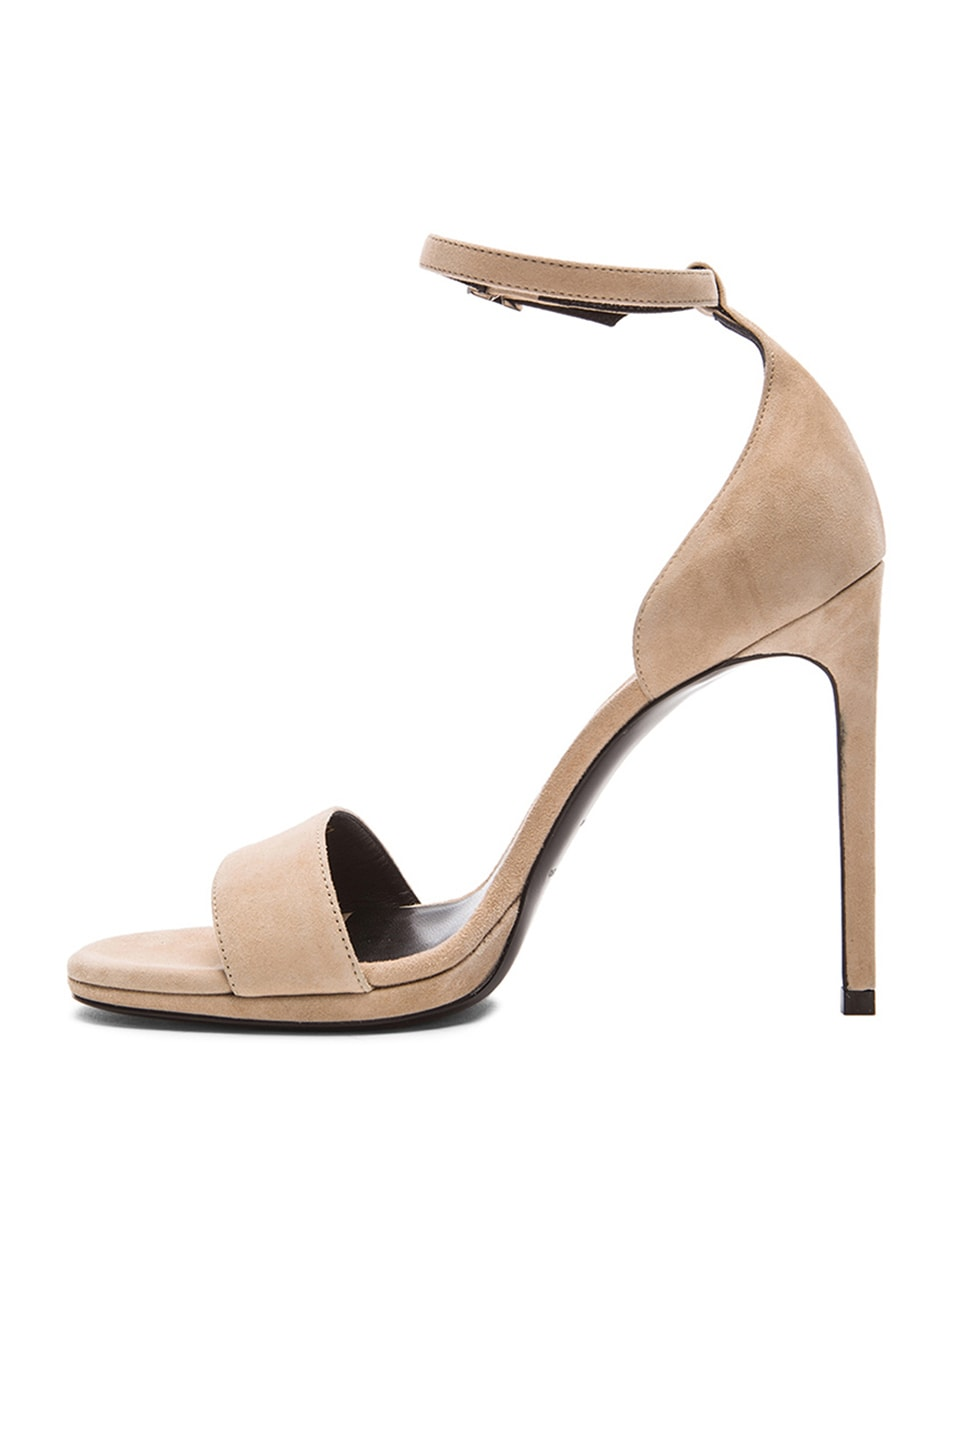 Image 5 of Saint Laurent Jane Suede Sandals in Dark Beige 4403d02dd372